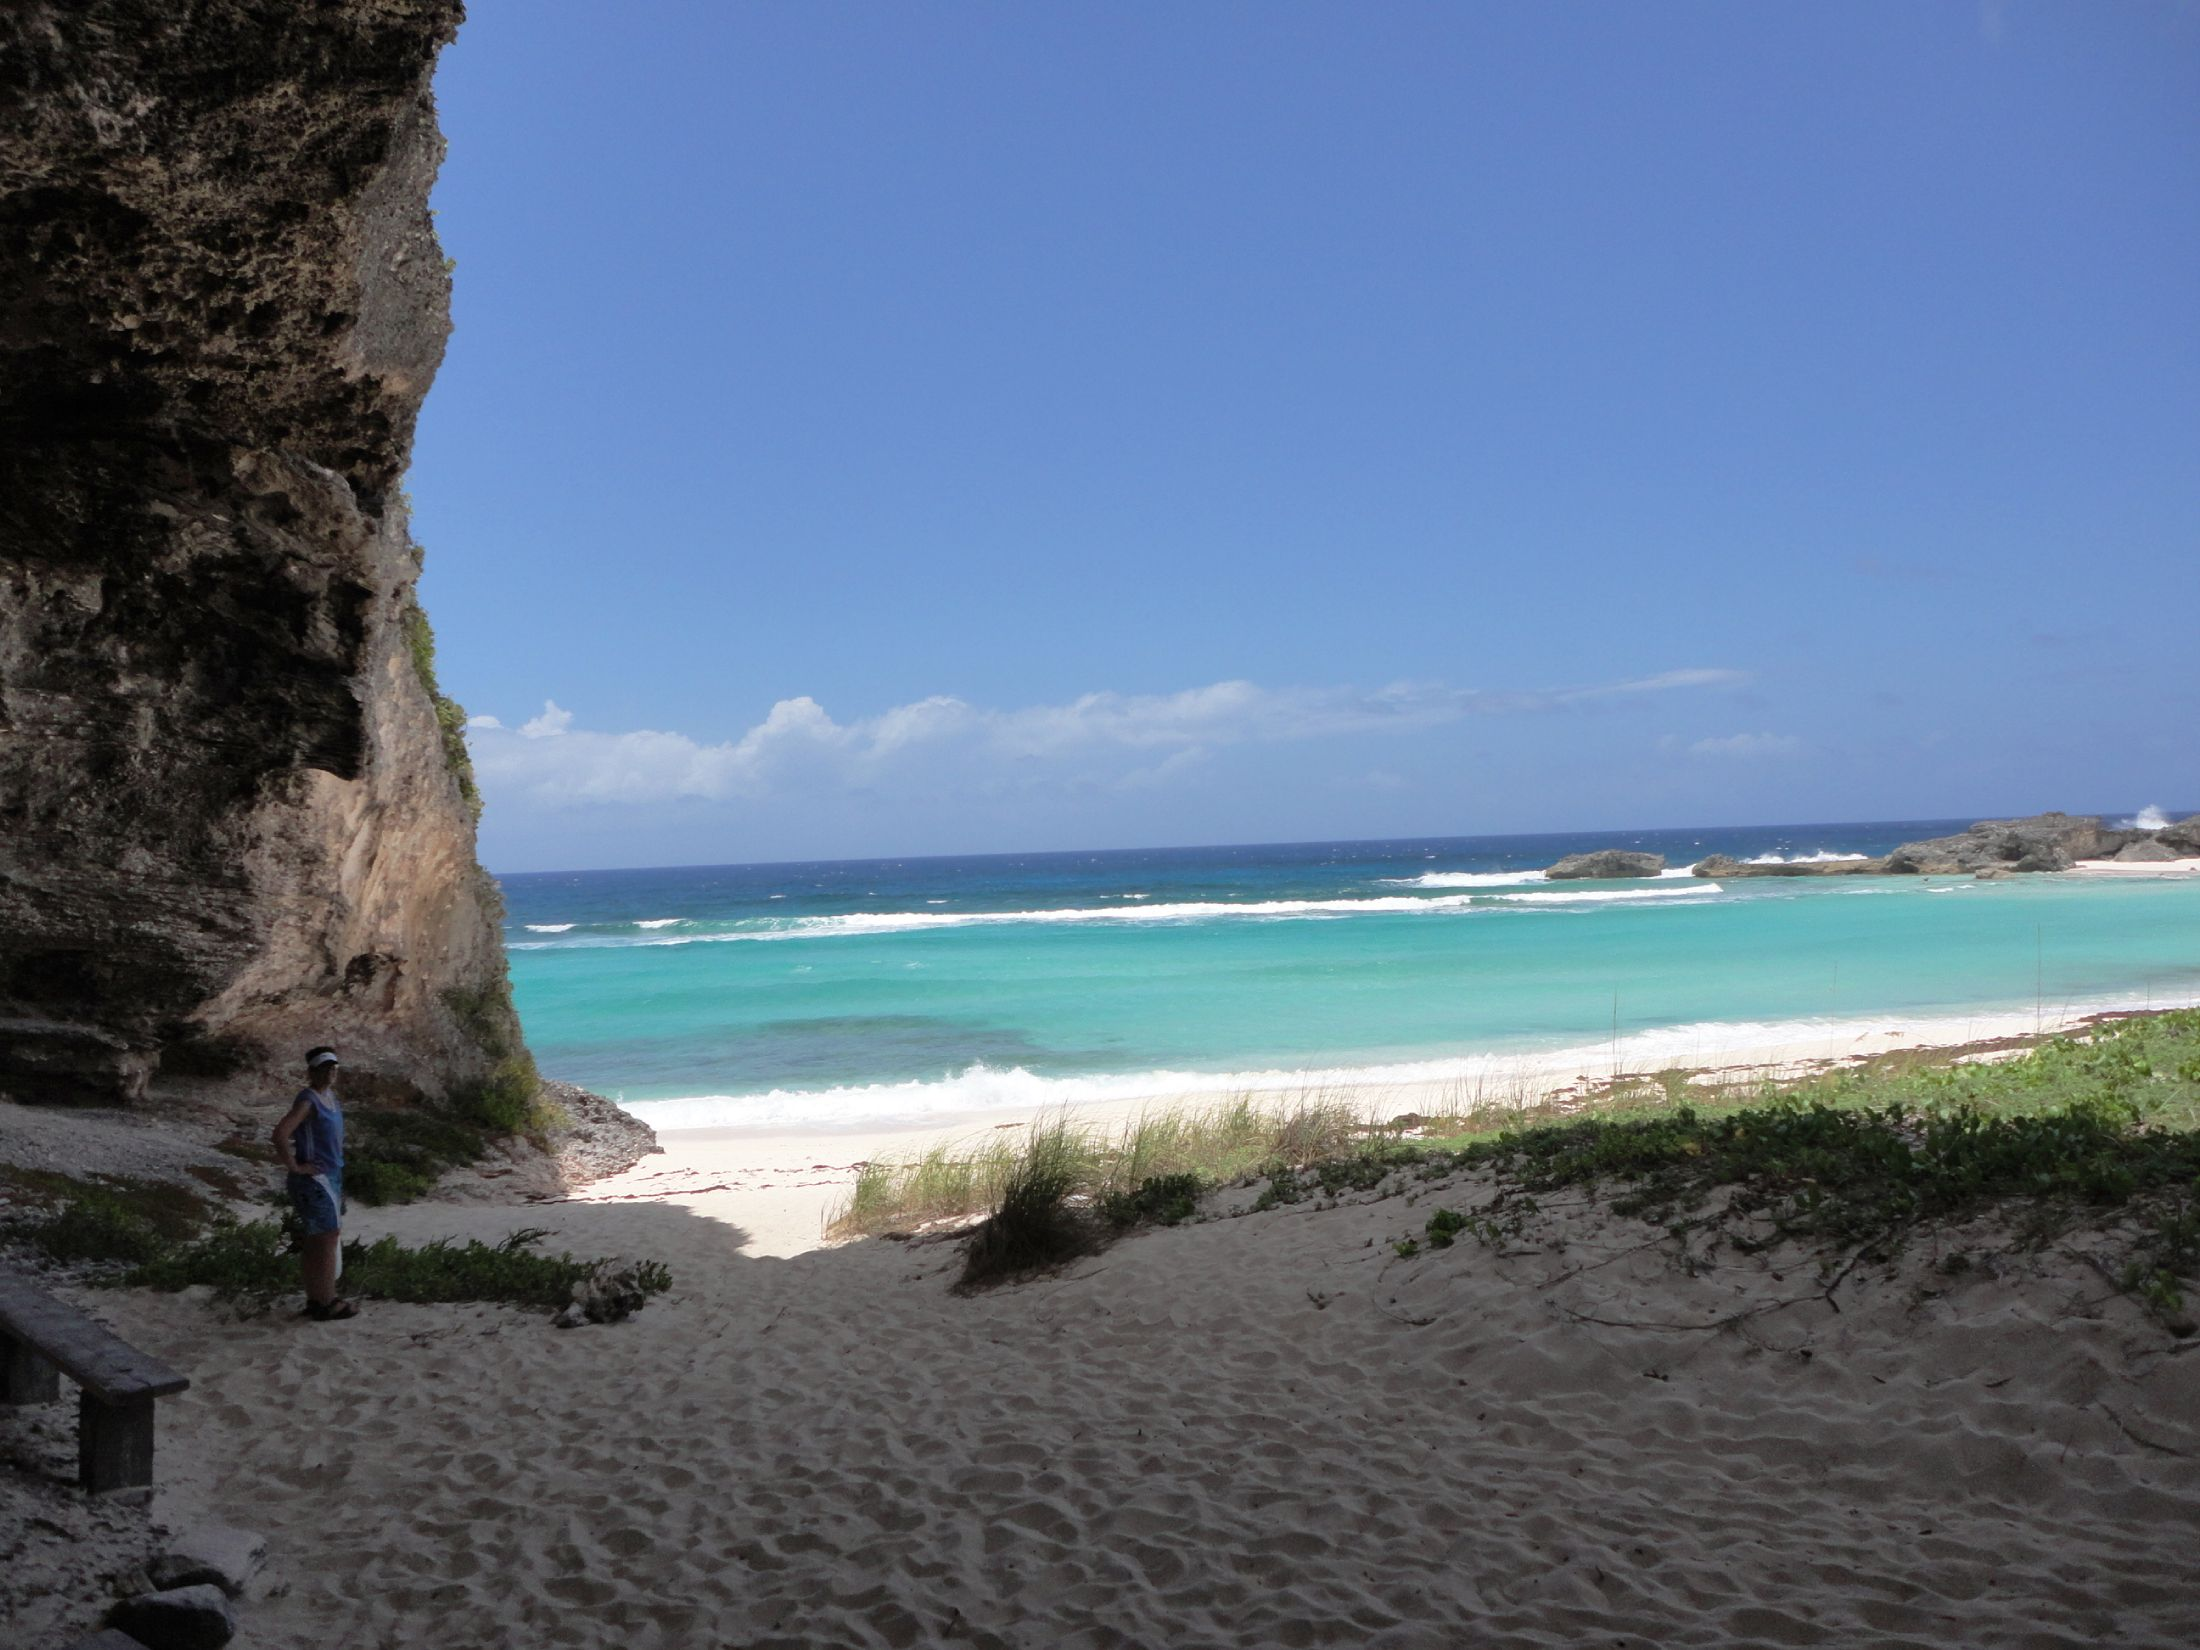 Bamberra Beach cavern, Middle Caicos